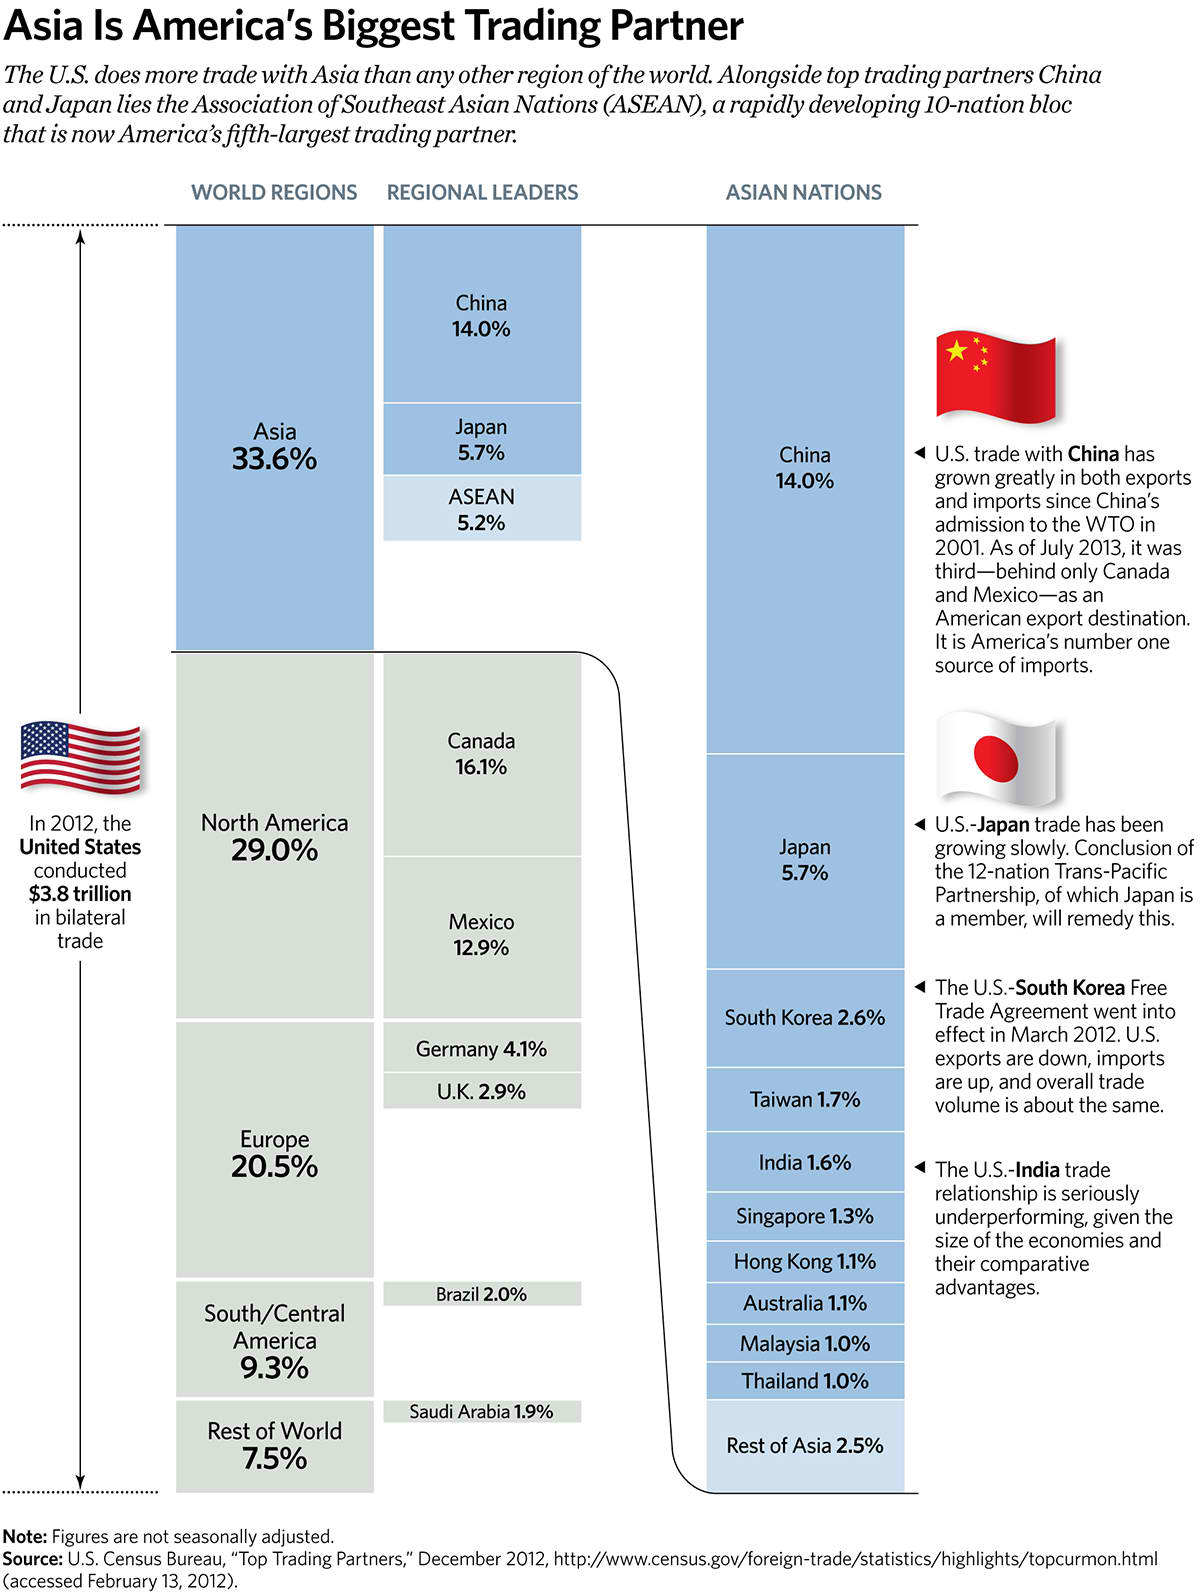 Asia Is Americaâ's Biggest Trading Partner